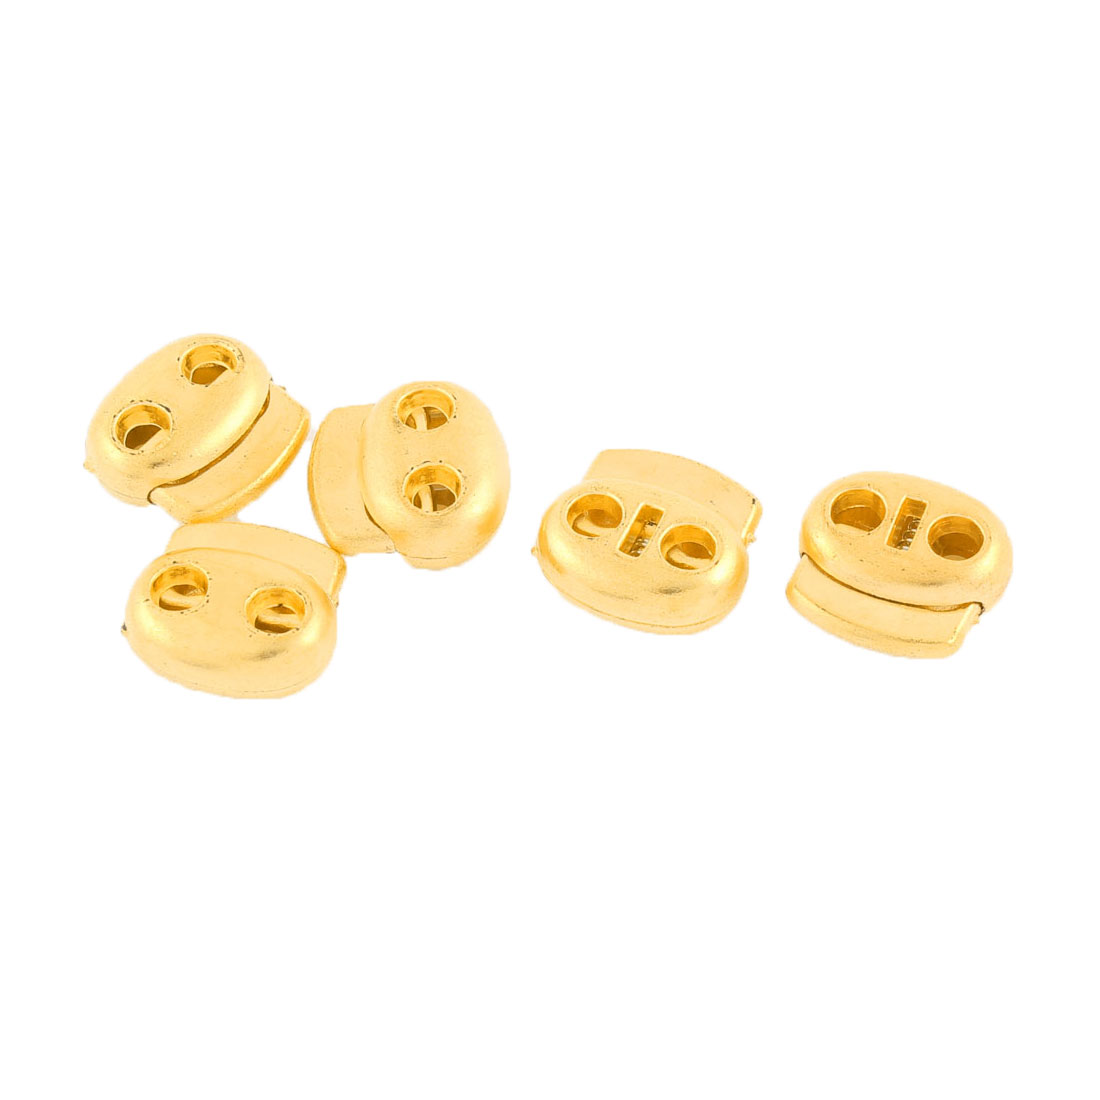 5 Pcs Double Holes Cord Lock Stopper Toggles Spring Adjuster Fastener Gold Tone